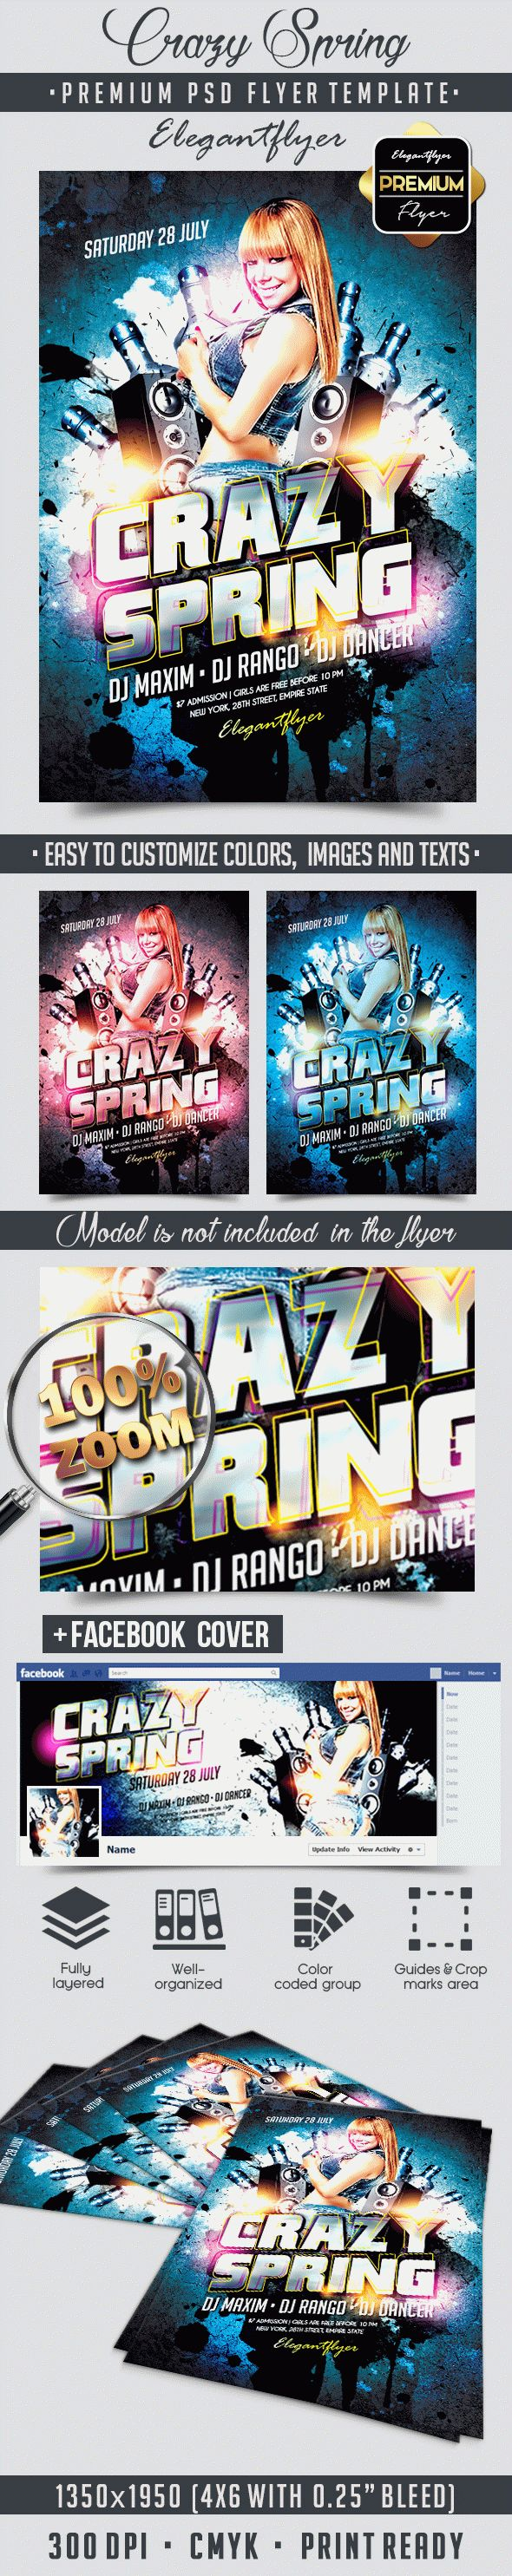 Crazy spring – Flyer PSD Template + Facebook Cover